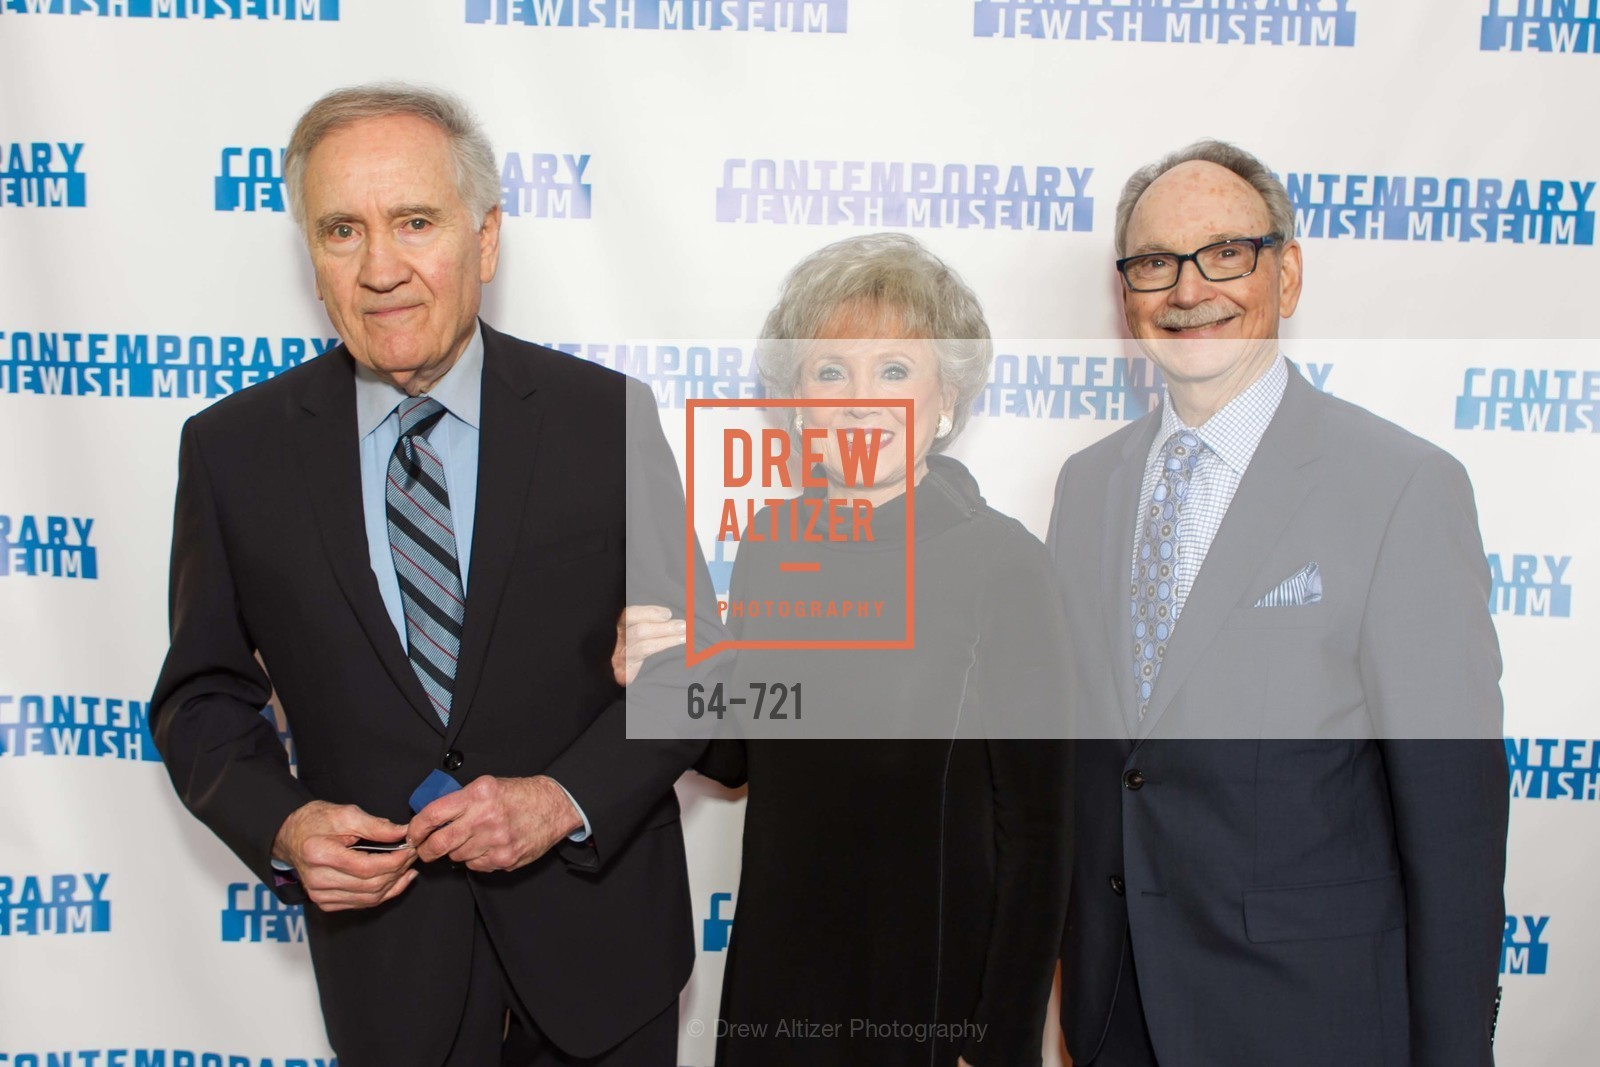 Ron Kaufman, Barbara Kaufman, Tom Kasten, The 2015 Dorothy Saxe Invitational Celebration at the JEWISH MUSEUM, US, May 12th, 2015,Drew Altizer, Drew Altizer Photography, full-service agency, private events, San Francisco photographer, photographer california